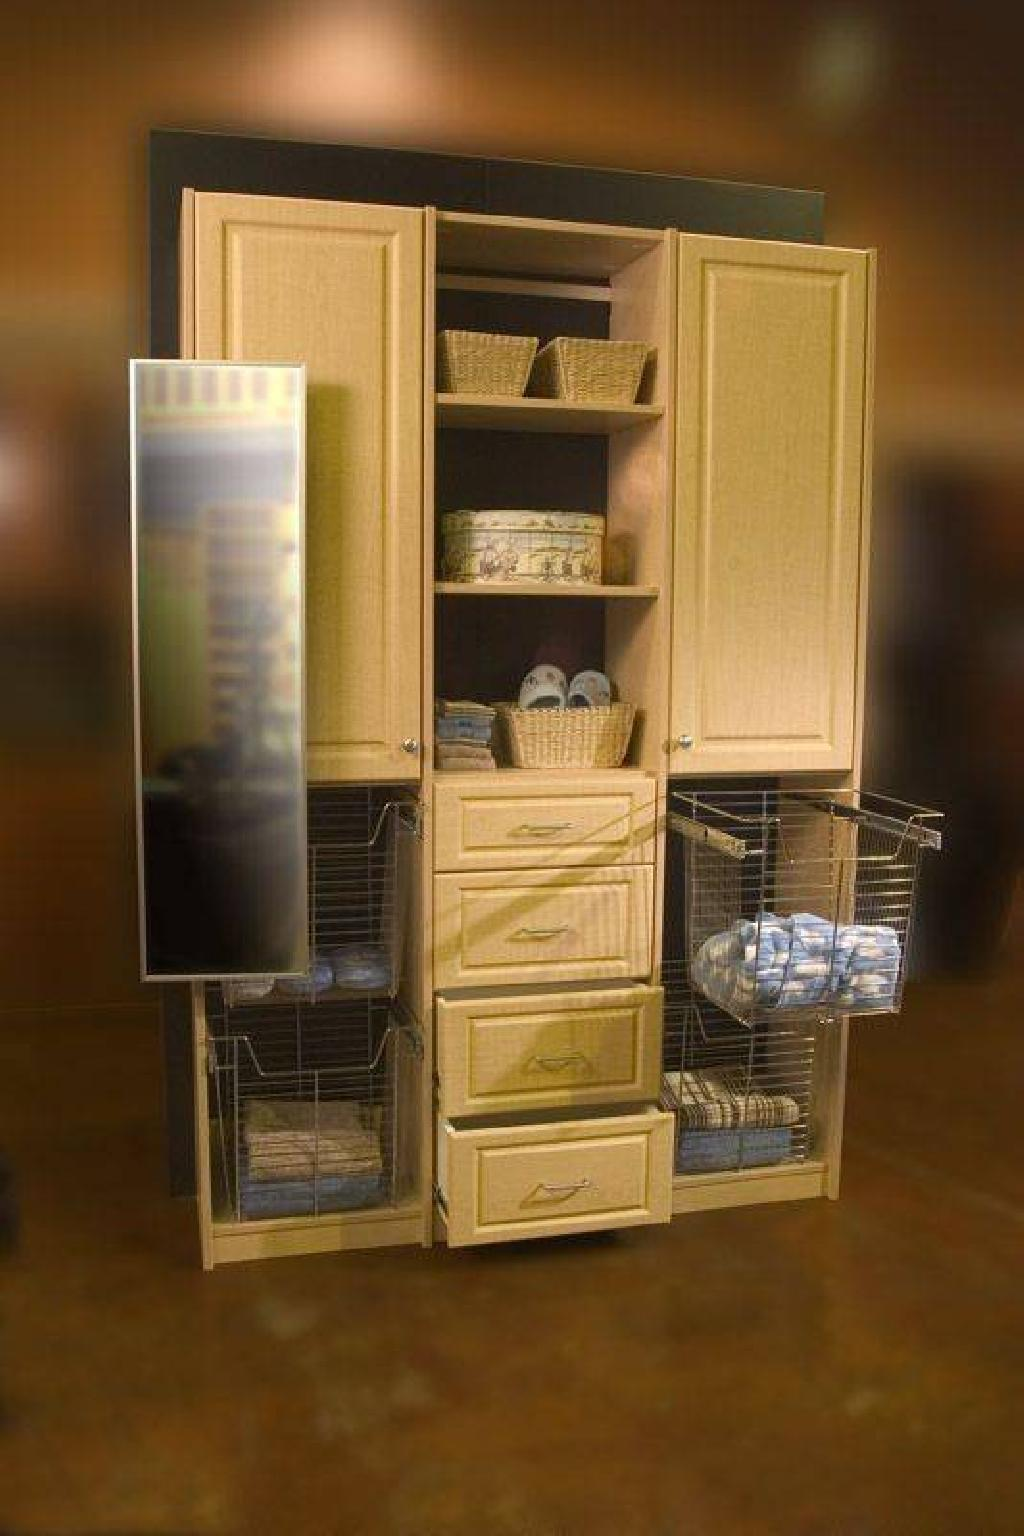 Linen Closet Organizer Systems Closets To Go Linen Reach In Closet Organizer Reach In Closets